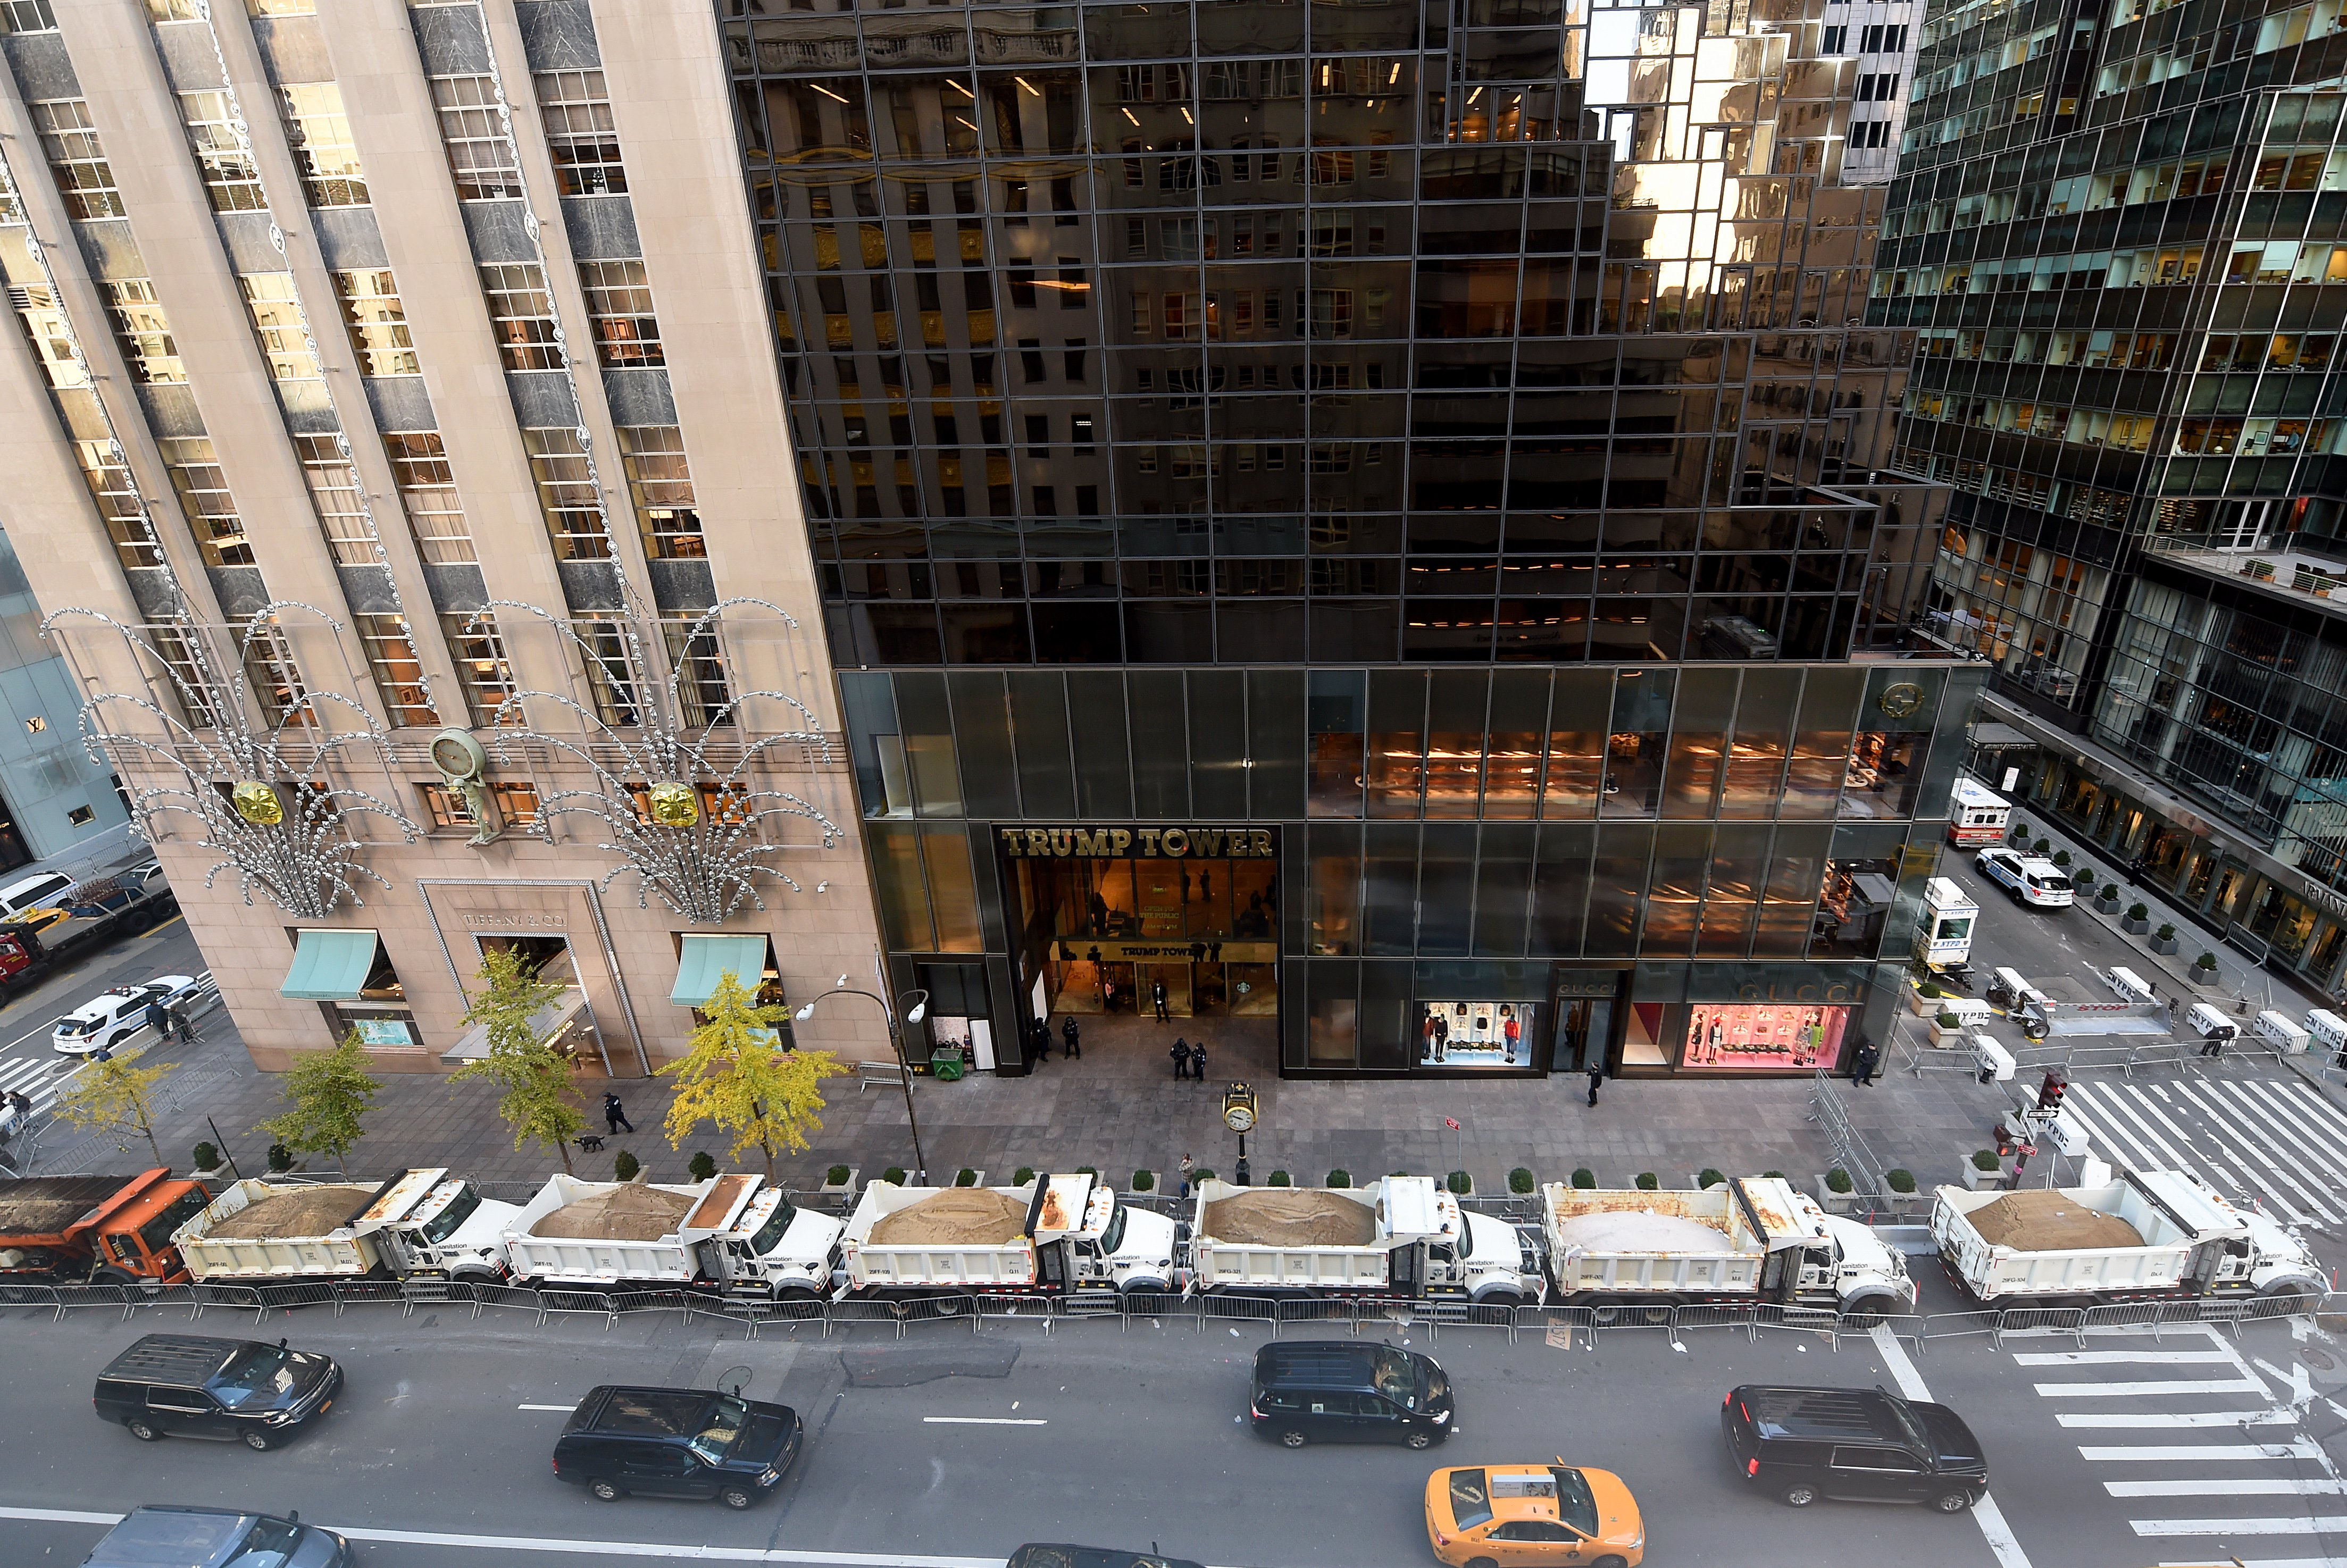 A protective barrier of Sanitation Department trucks are parked in front of Trump Tower on 5th Avenue in New York City.